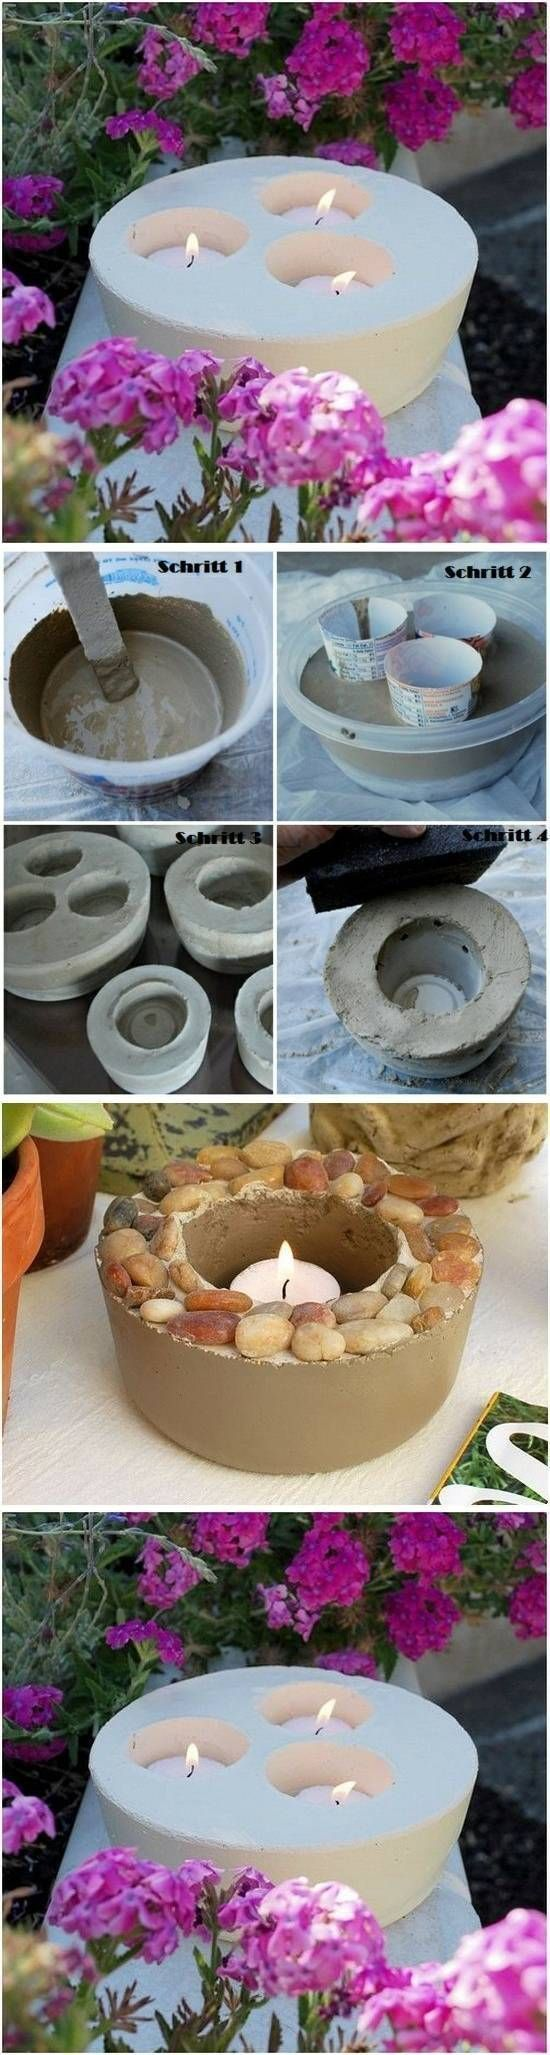 "<input+type=""hidden""+value=""""+data-frizzlyPostContainer=""""+data-frizzlyPostUrl=""http://www.usefuldiy.com/diy-concrete-candlestick/""+data-frizzlyPostTitle=""DIY+Concrete+Candlestick""+data-frizzlyHoverContainer=""""><p>>>>+Craft+Tutorials+More+Free+Instructions+Free+Tutorials+More+Craft+Tutorials</p>:"